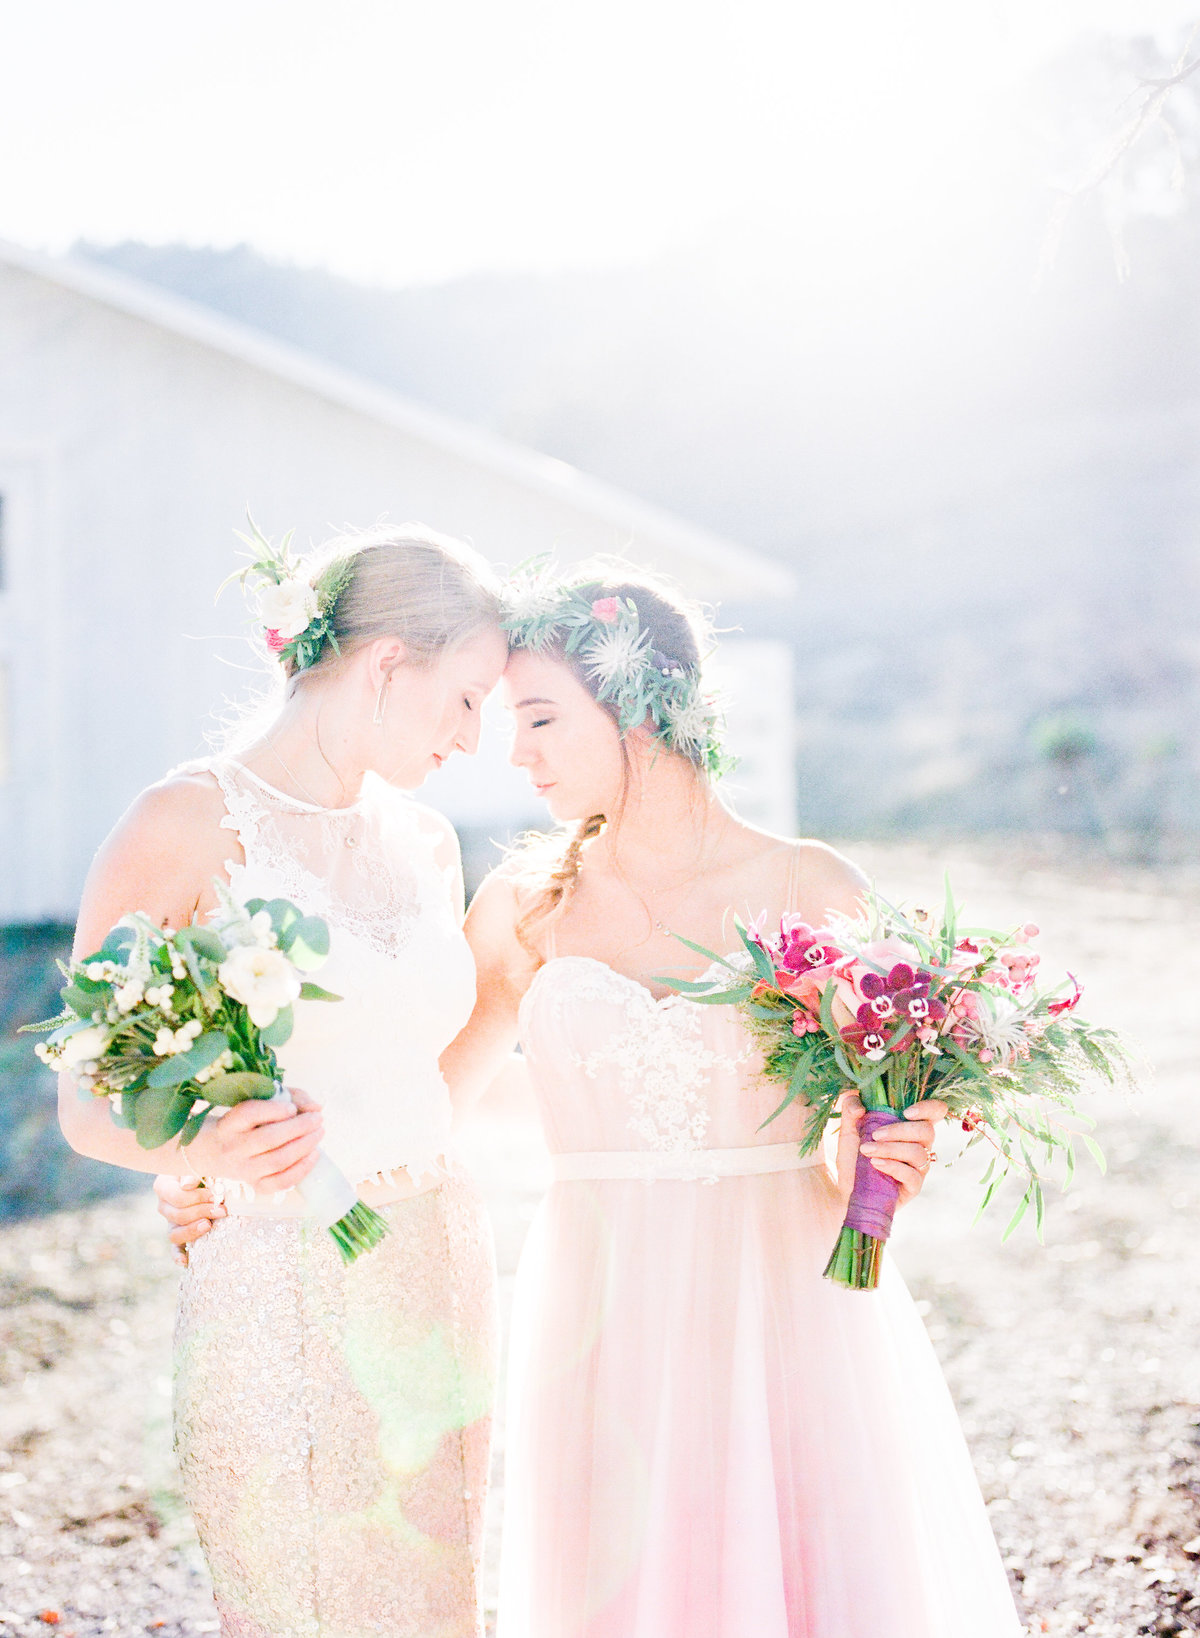 Hazy Sunlight Wedding Photo